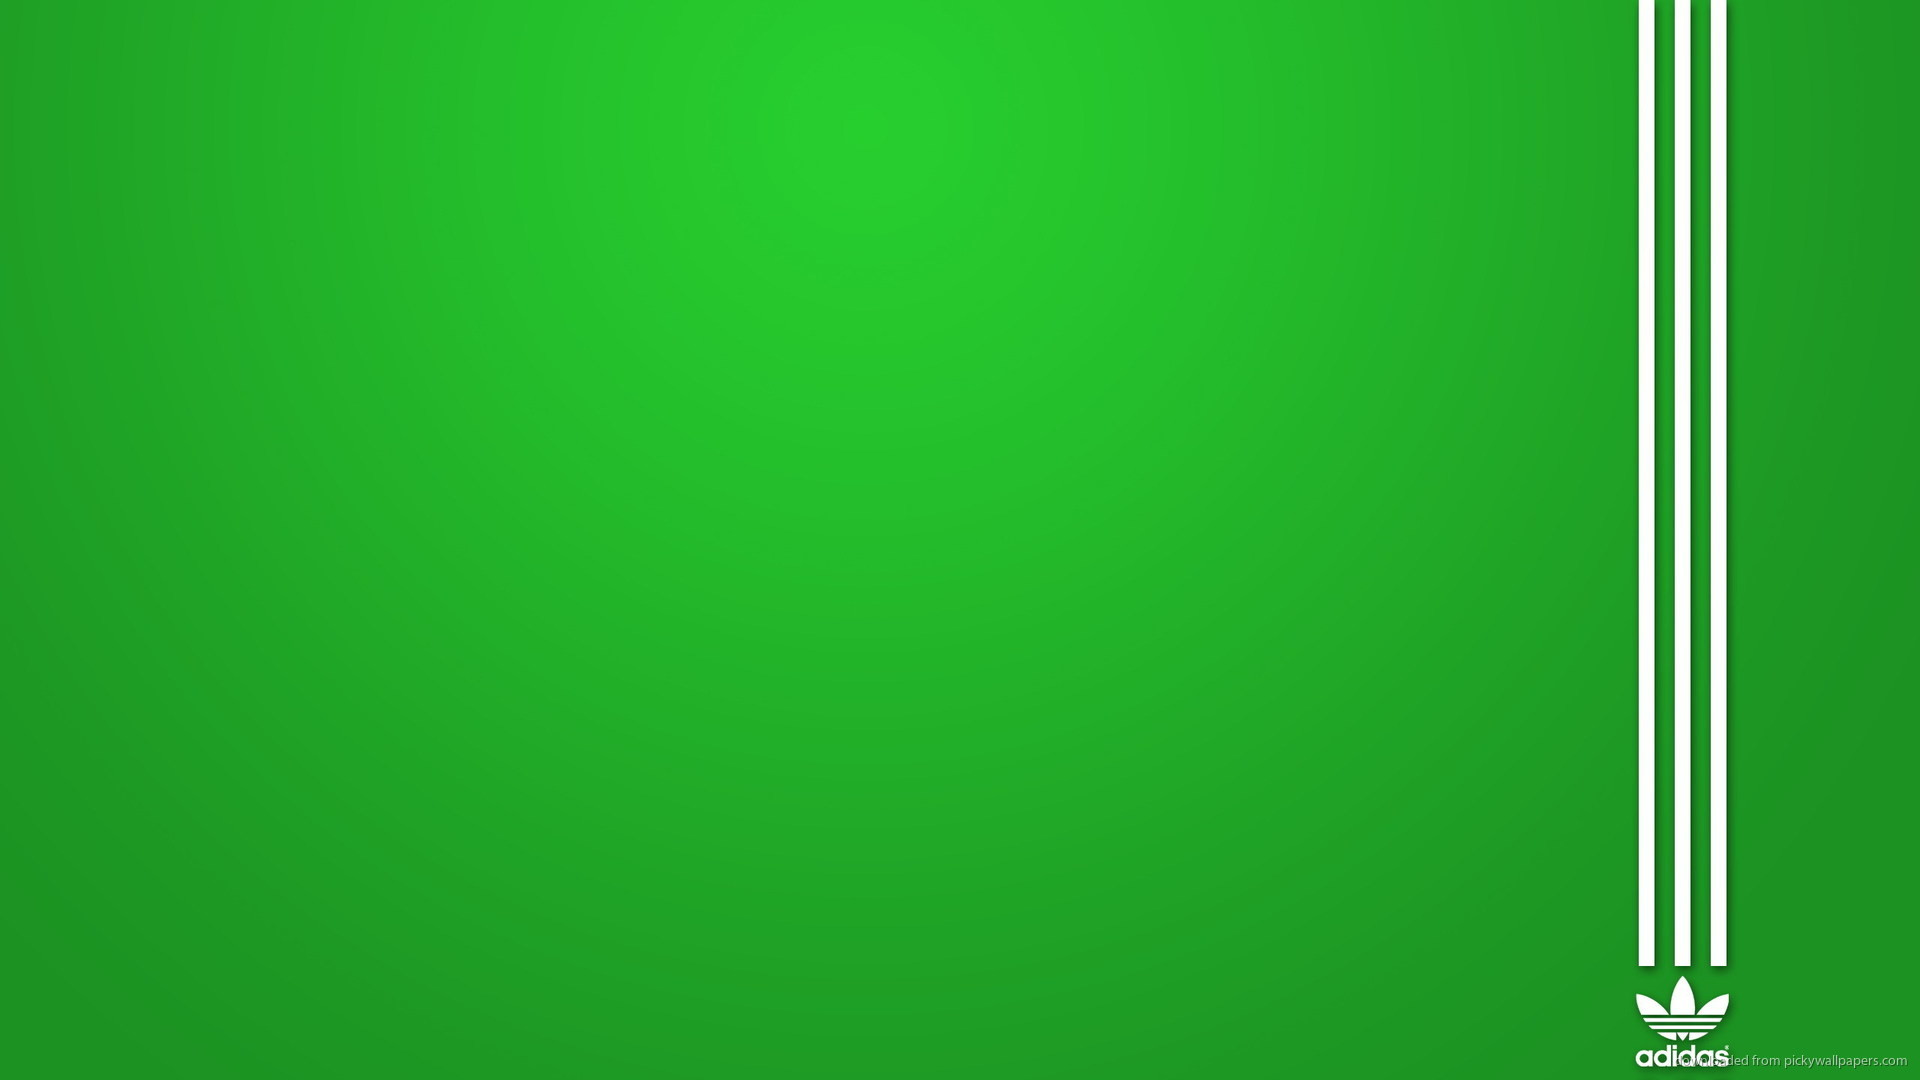 Green Adidas Wallpaper Background picture